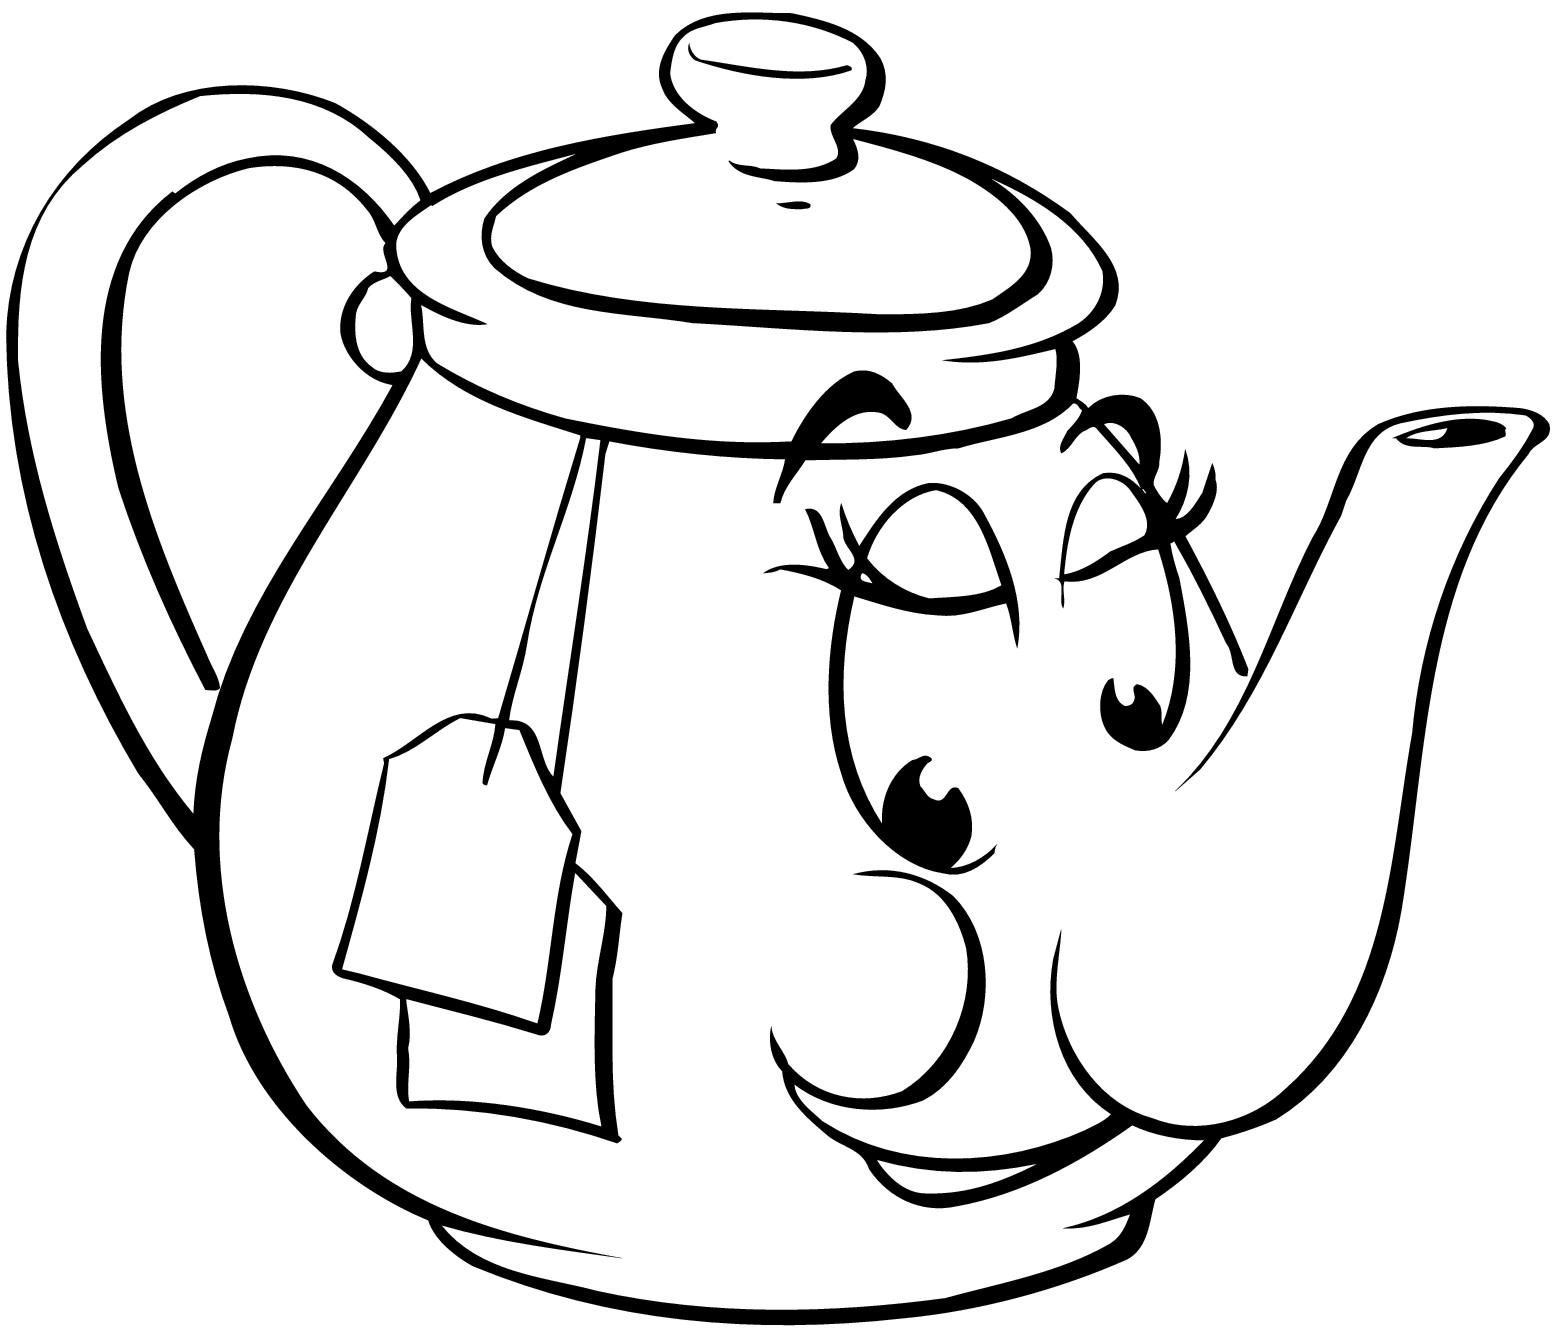 It is a graphic of Priceless pot coloring pages